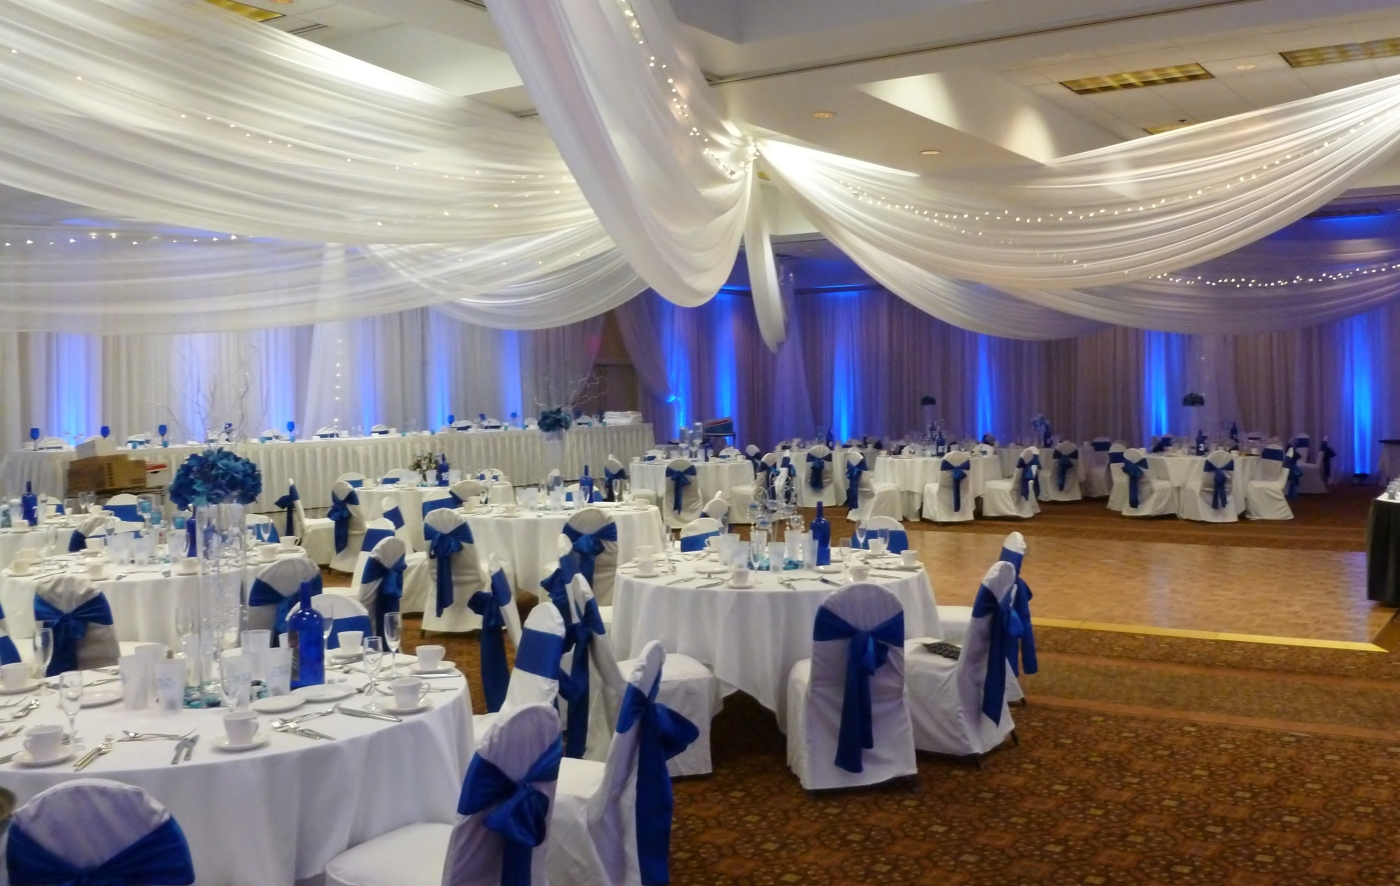 Simply Elegant Chair Covers and Linens – Chair Cover